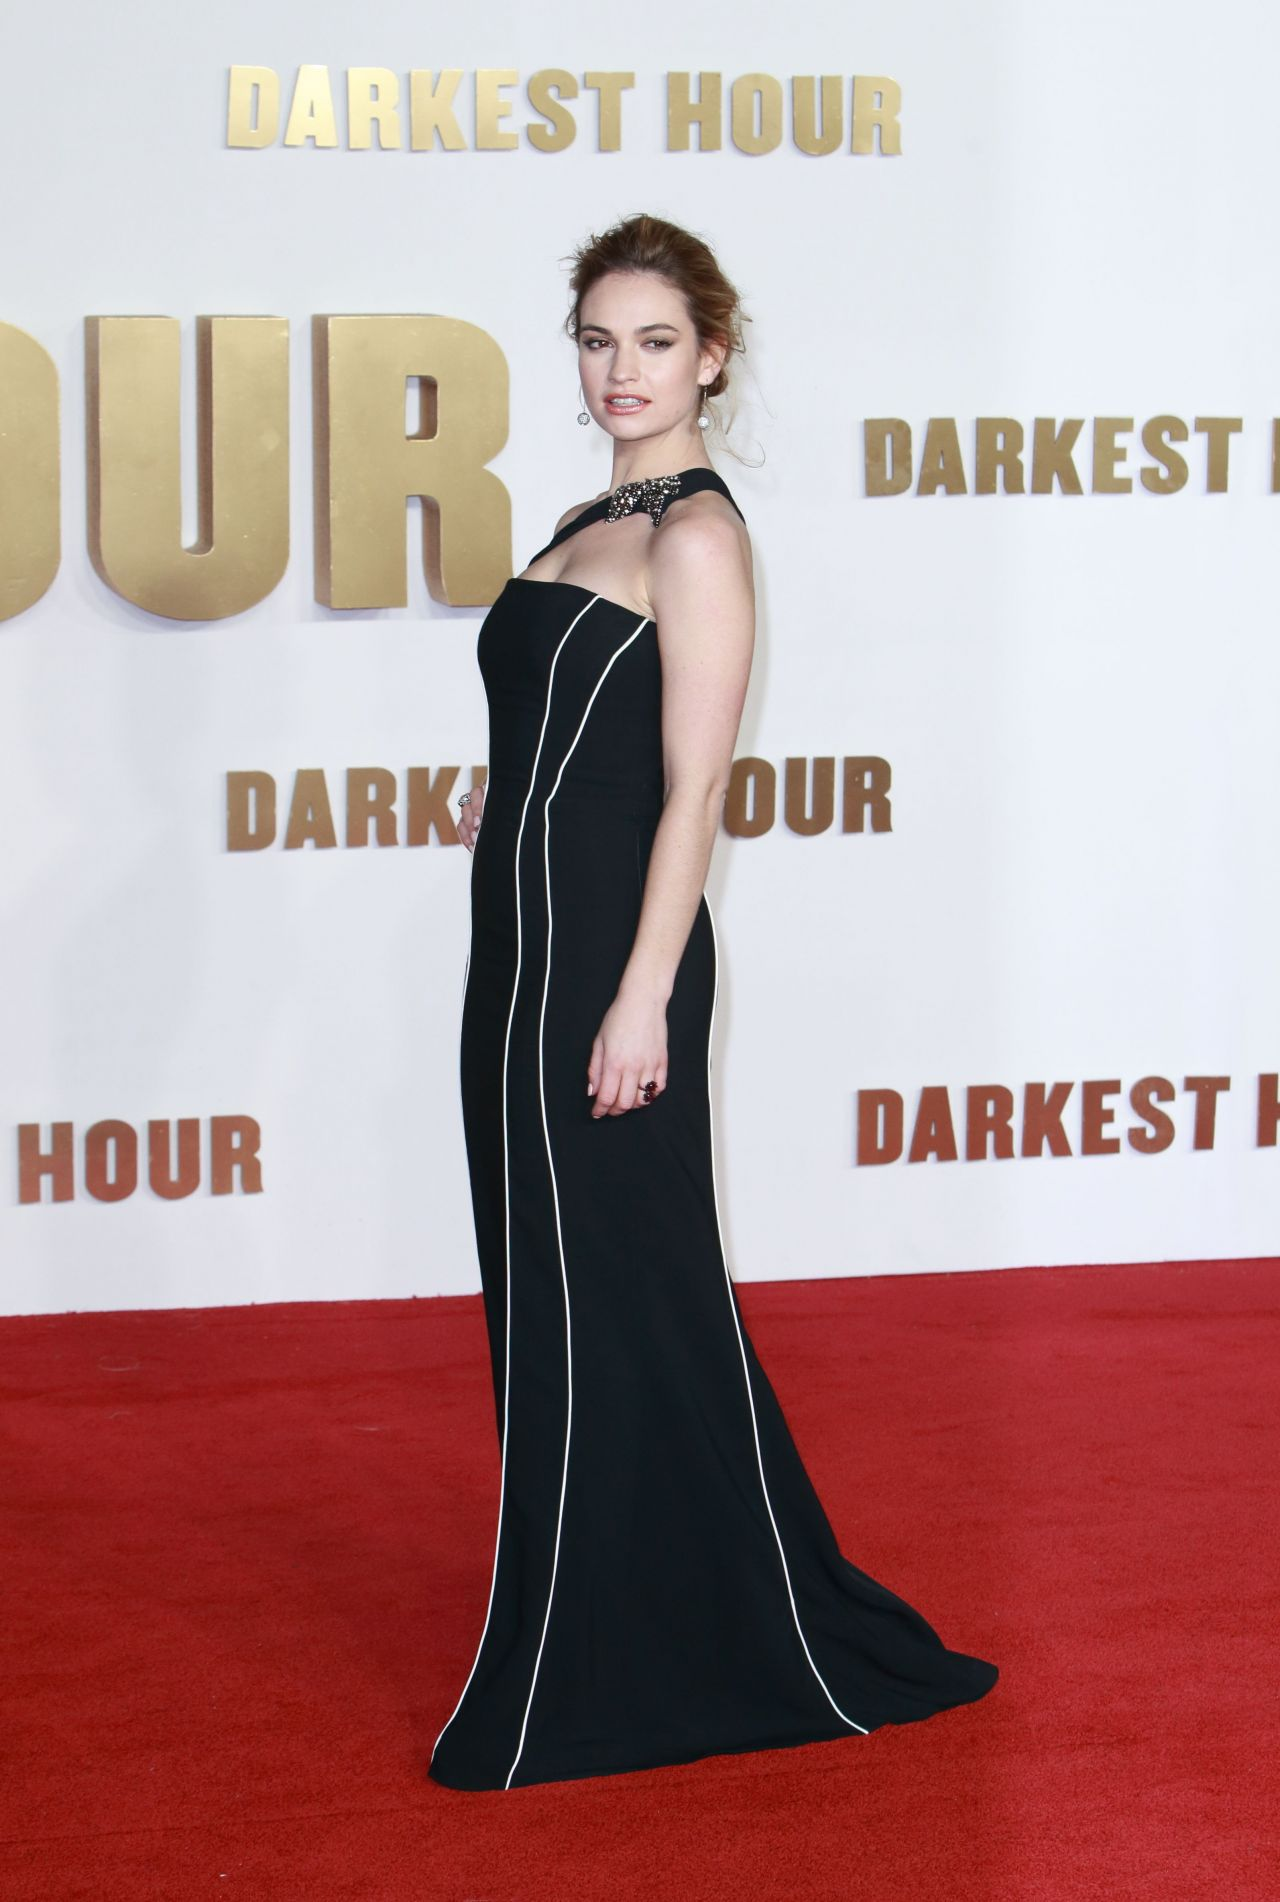 http://celebmafia.com/wp-content/uploads/2017/12/lily-james-darkest-hour-premiere-in-london-13.jpg